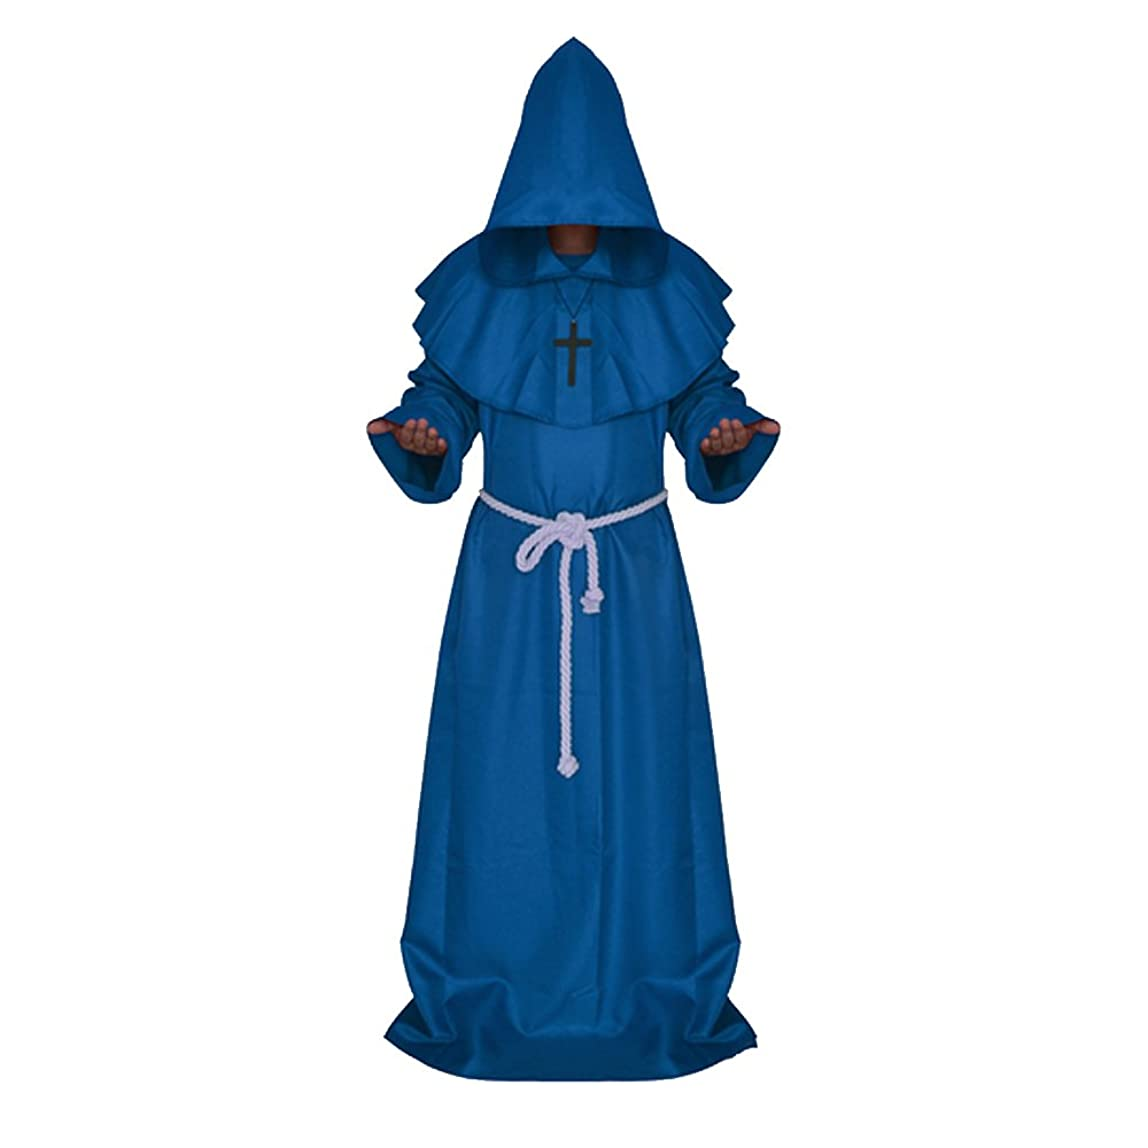 Men Medieval Hooded Robe Monks Witch Pastor Cloak Knight Fancy Cool Cosplay Halloween Party Costume Clothes Blue nvztbts424844